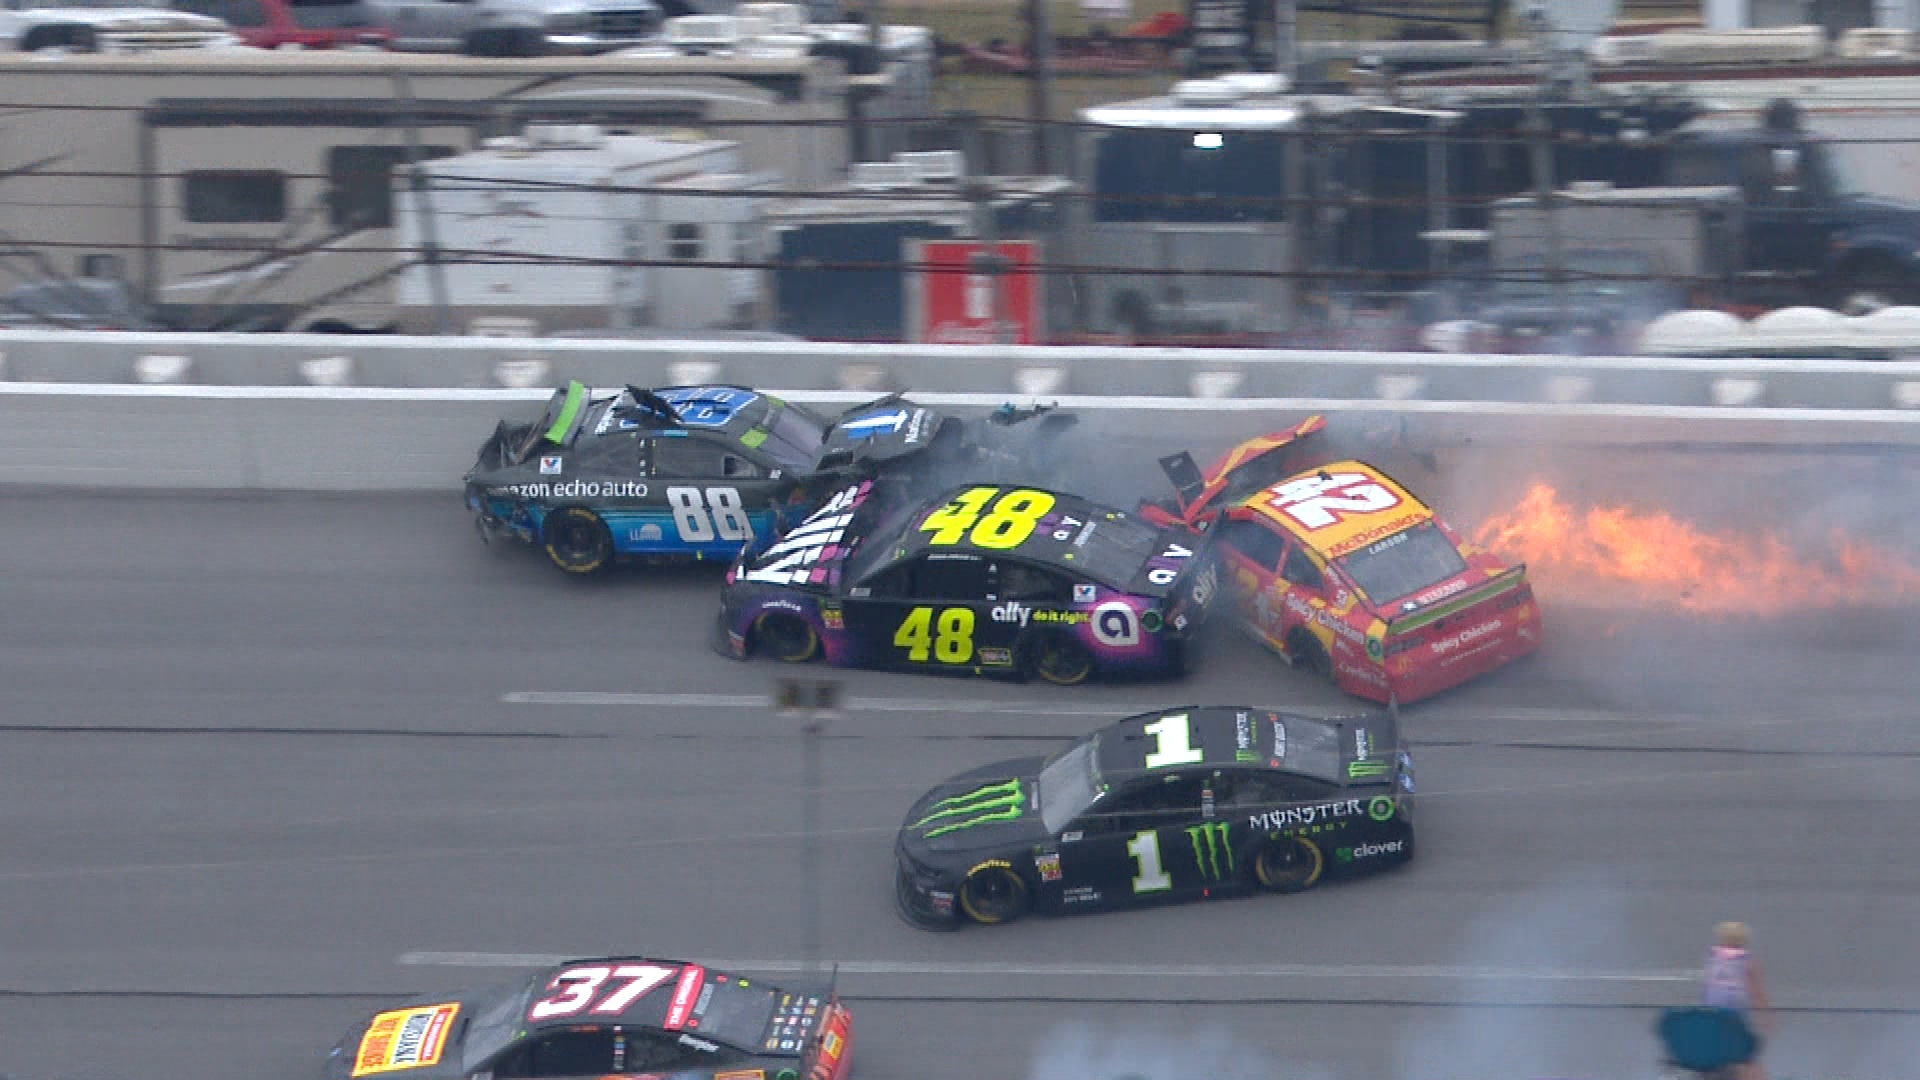 NASCAR's 'double yellow line' rule impacts racing at Talladega